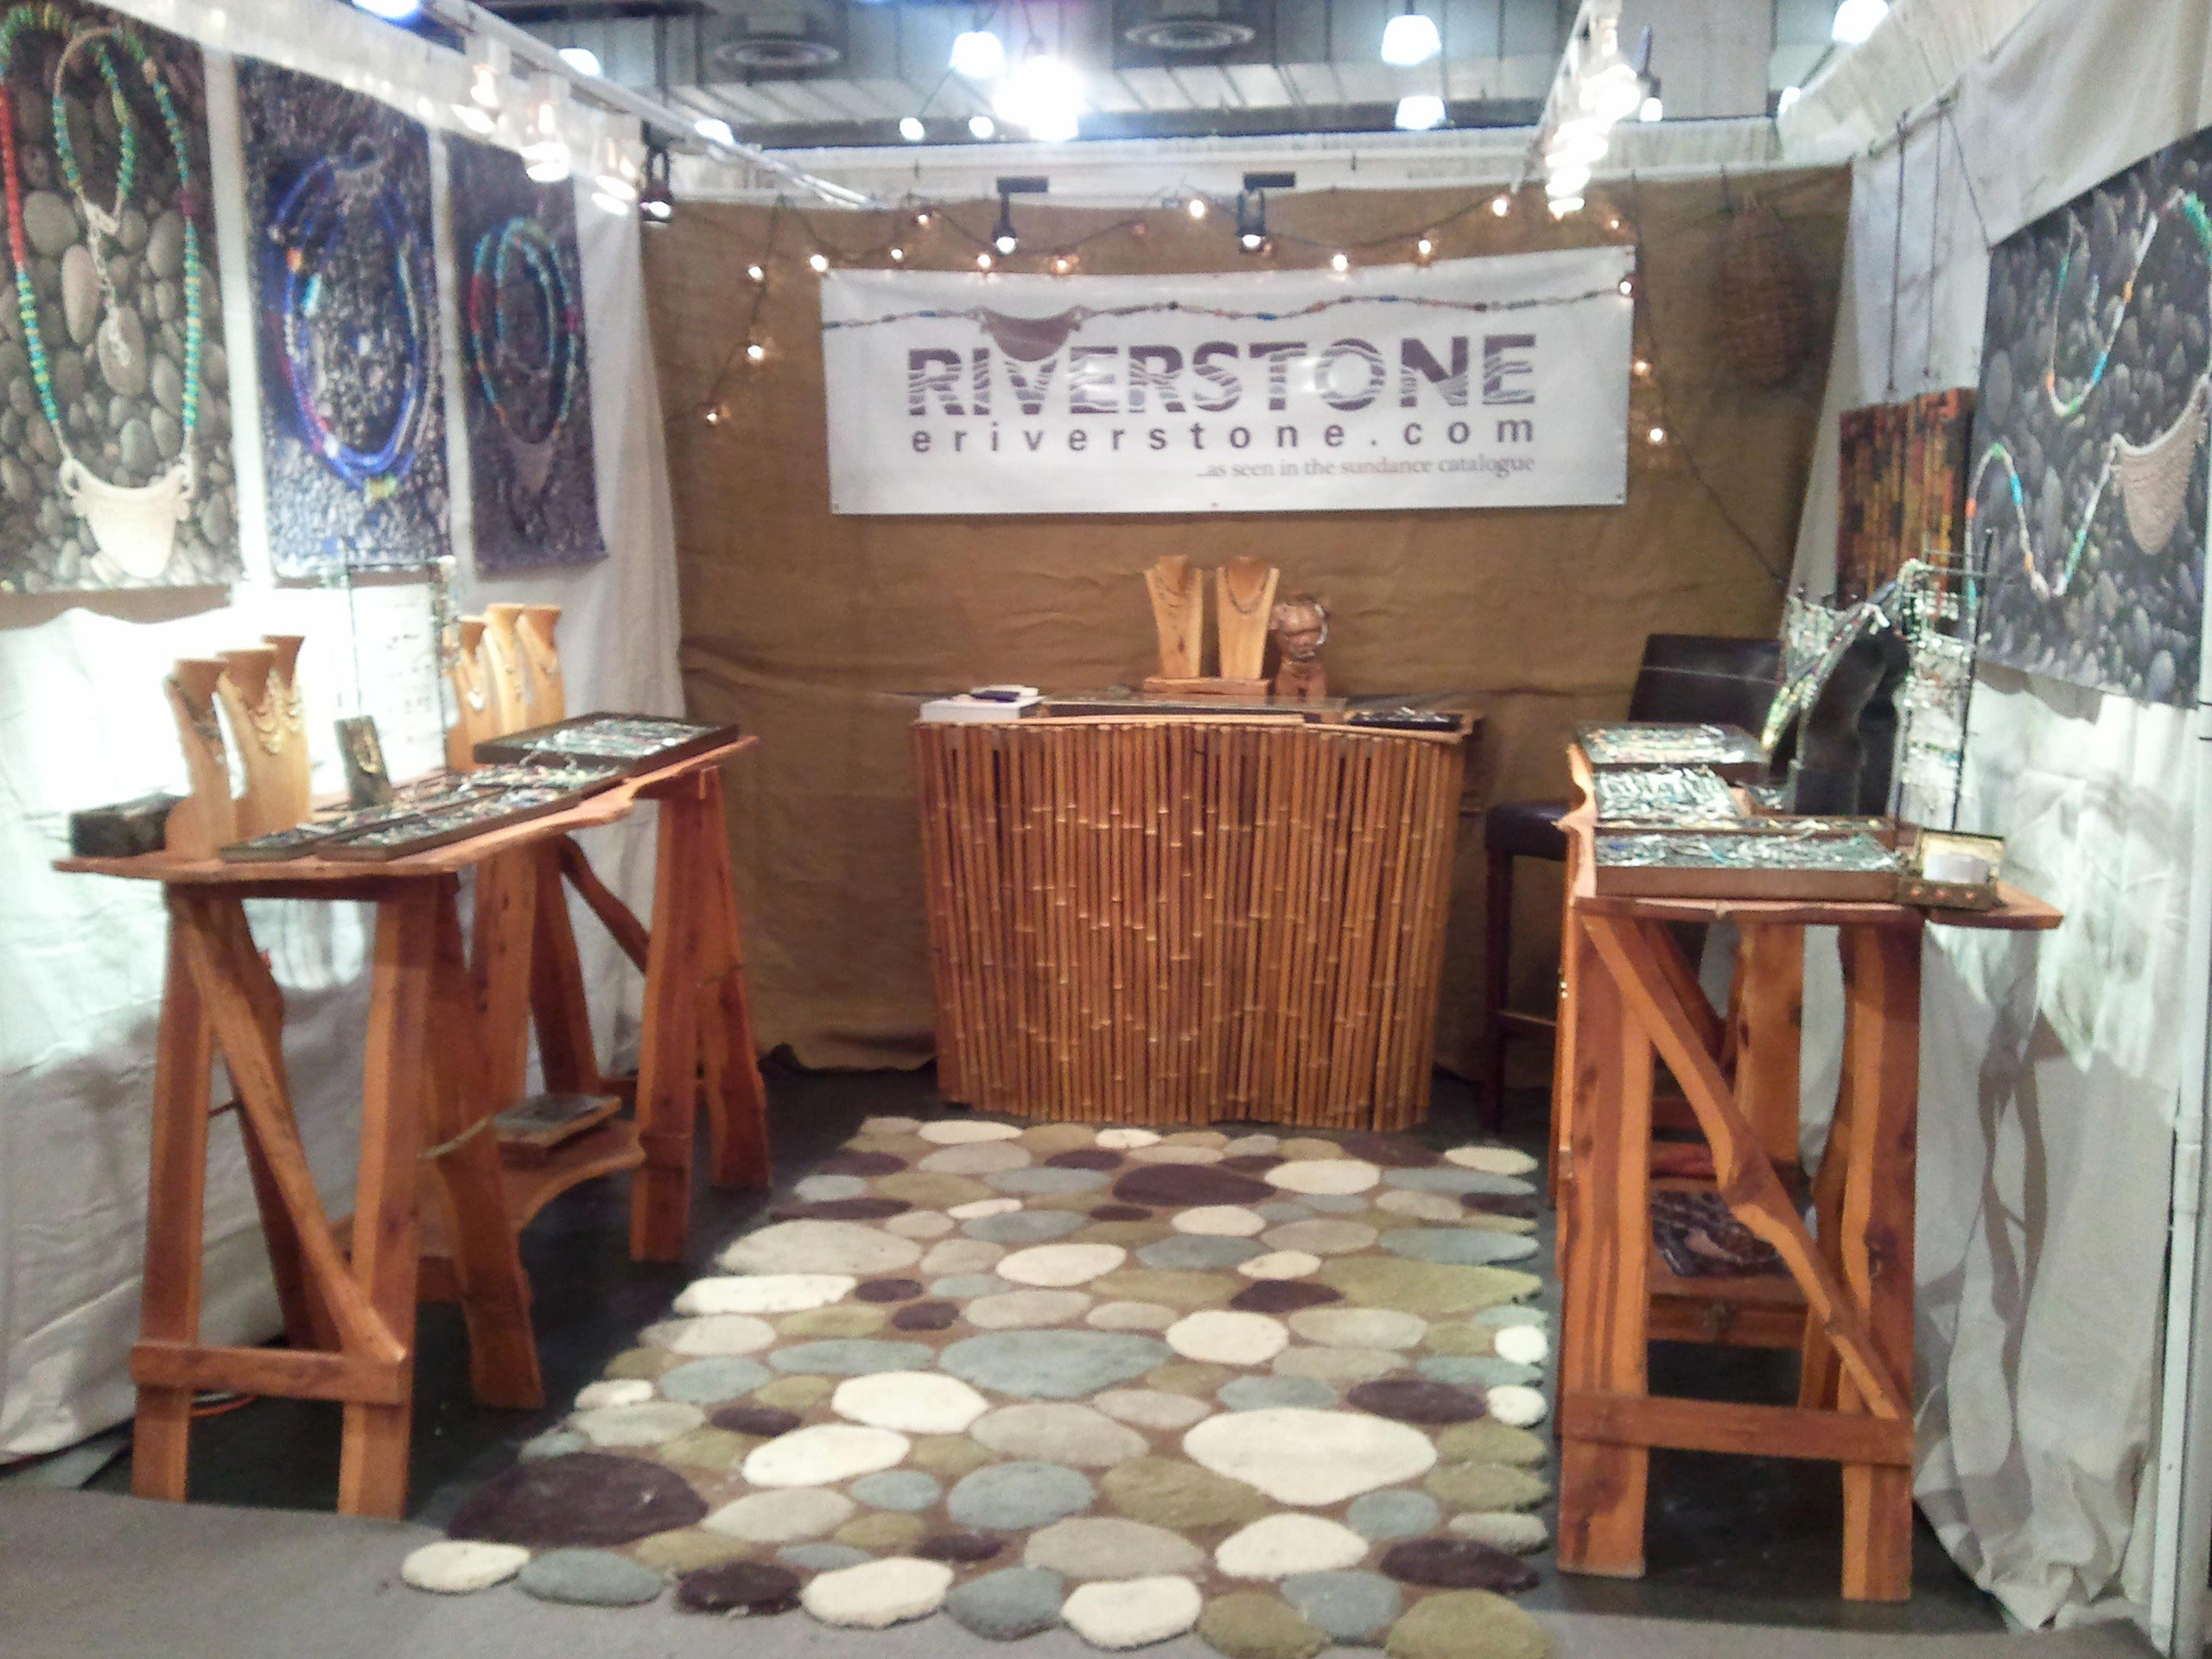 Jewelry Exhibition Booth Design : Riverstone custom jewelry craft fair appearances